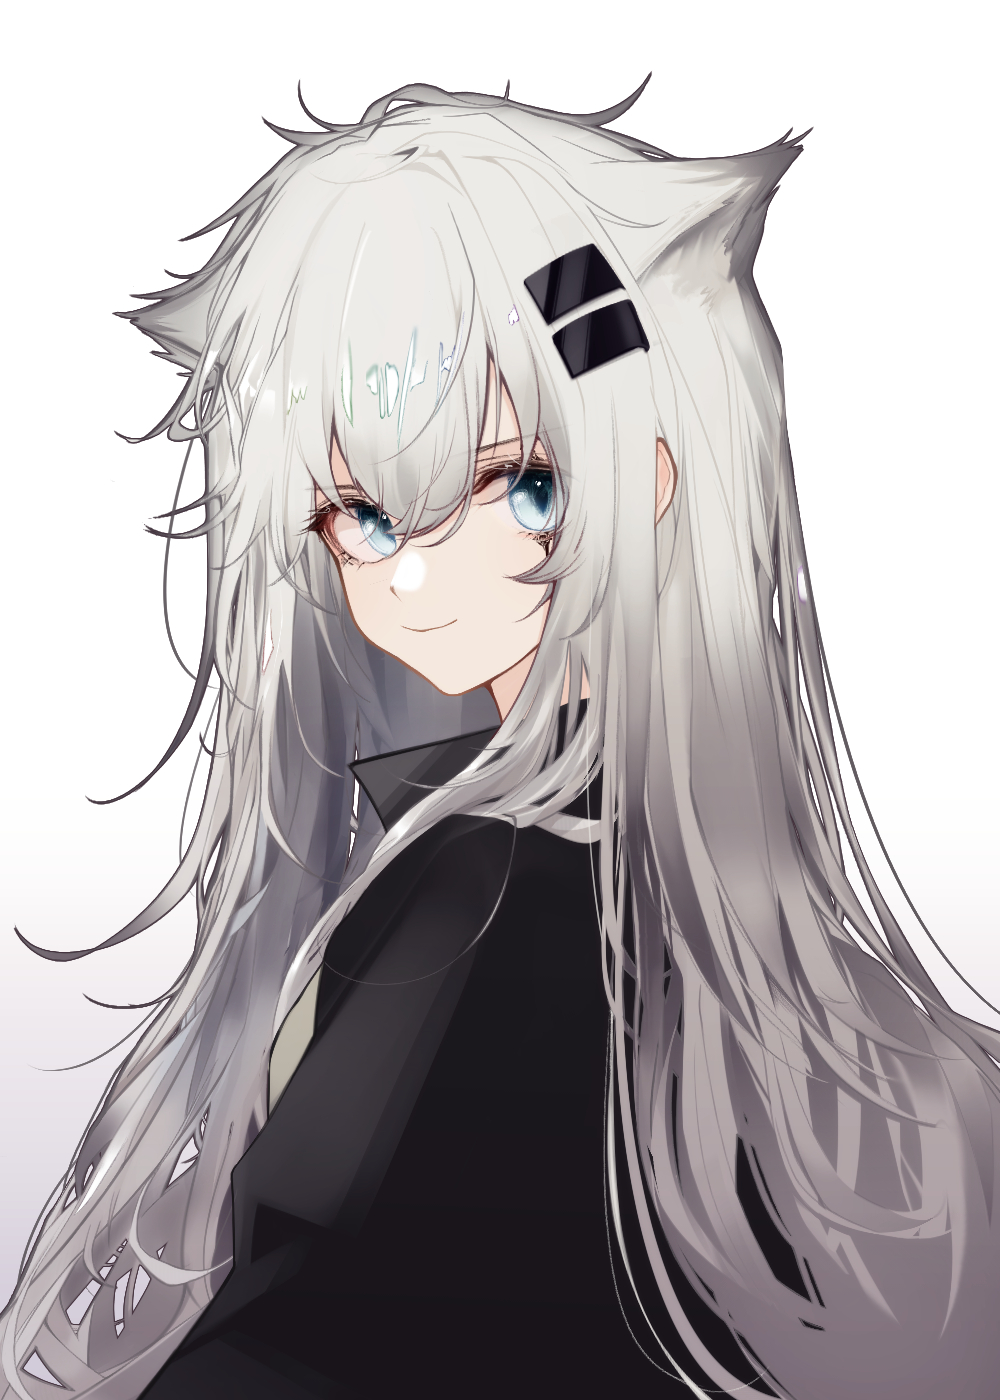 1girl animal_ears arknights bangs blue_eyes closed_mouth eyebrows_visible_through_hair from_side hair_ornament highres lappland_(arknights) looking_at_viewer looking_to_the_side portrait runamonet silver_hair simple_background smile solo white_background wolf_ears wolf_girl